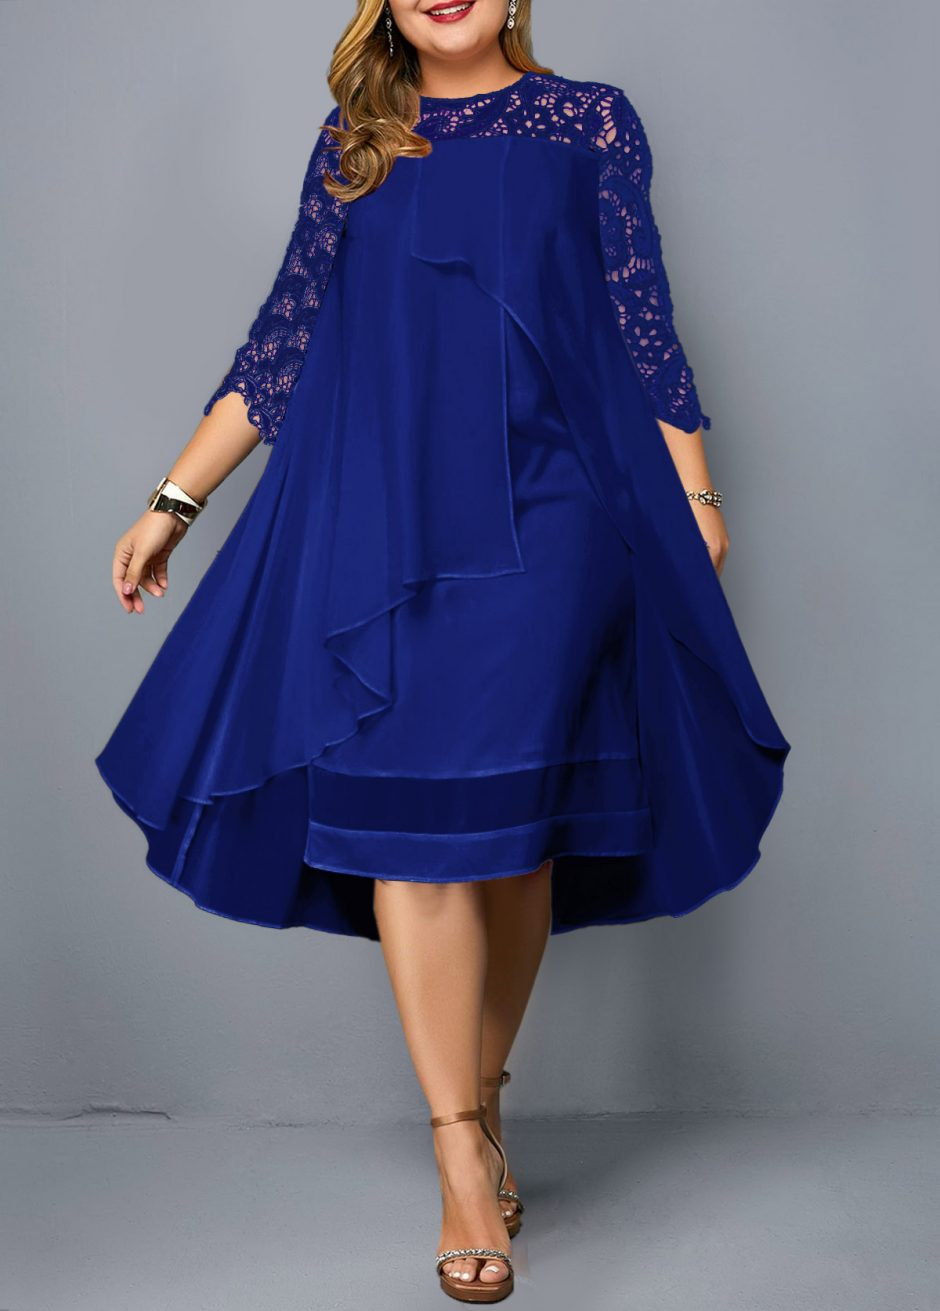 225254 G 1560836283725 940x1311 - Plus size blue dress